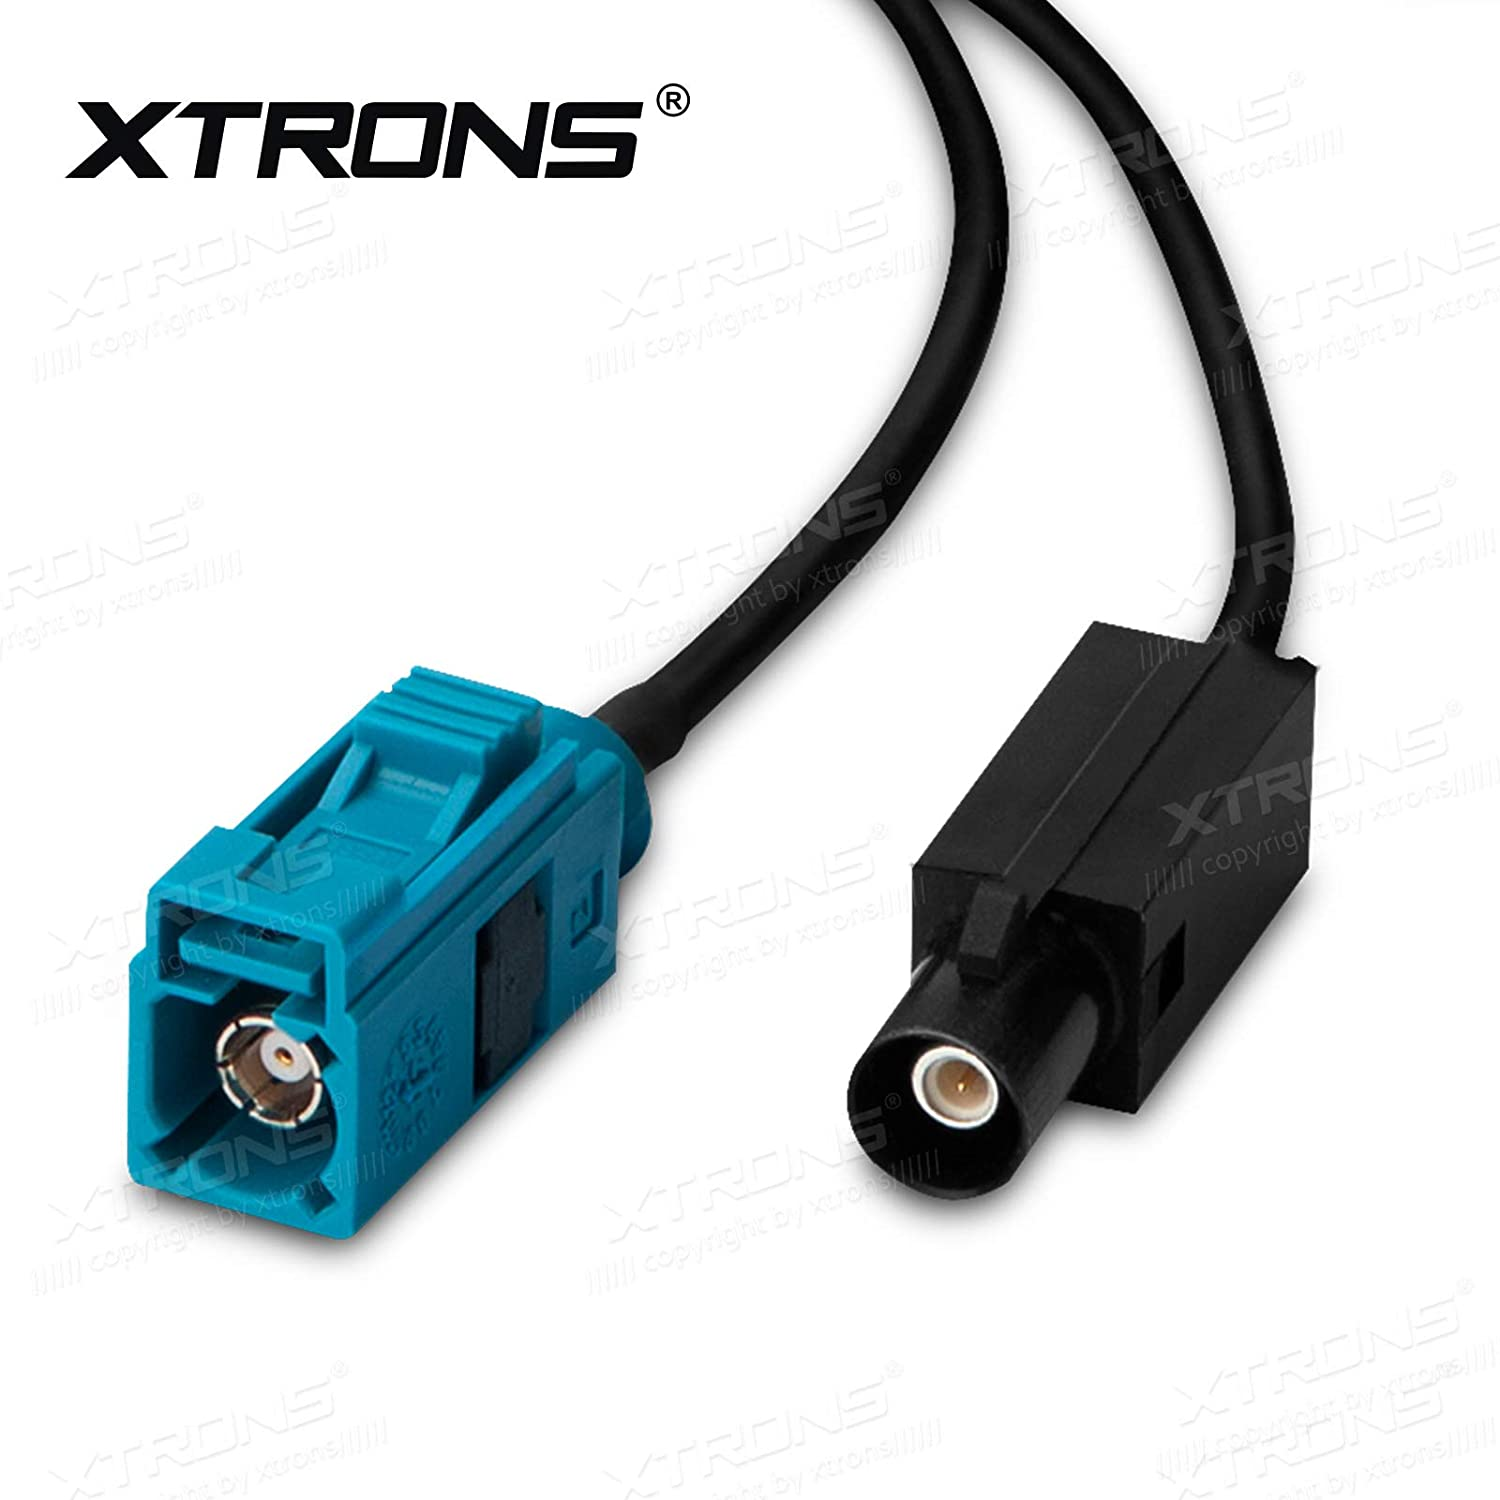 XTRONS 6 Meter Extension Antenna Aerial Adapter Cable Fakra Z Jack//Female to Fakra Z Plug//Male